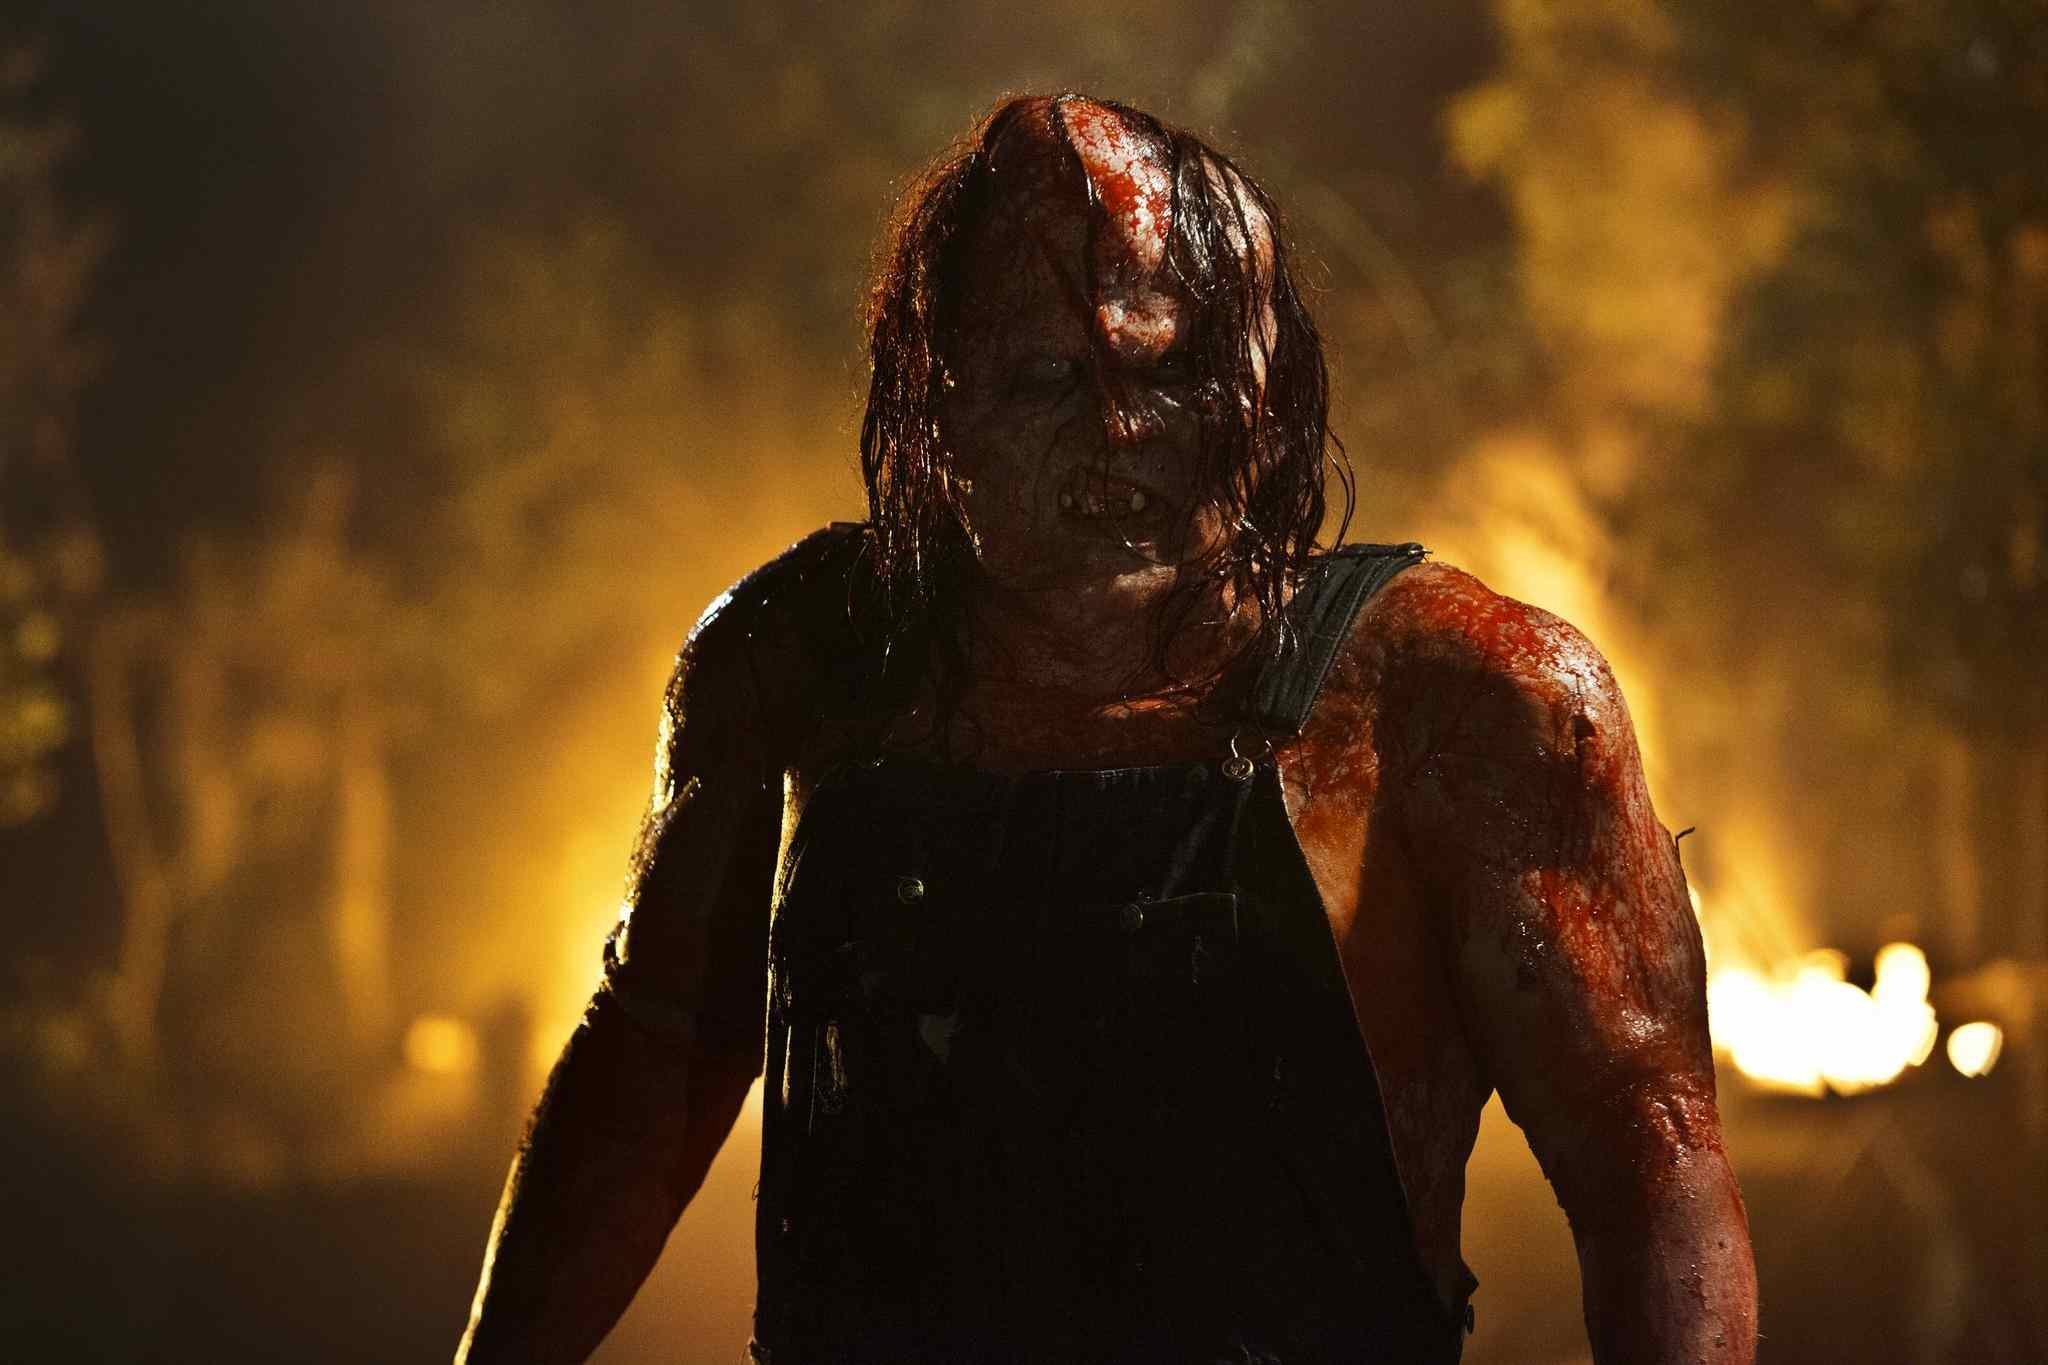 Victor Crowley in Hatchet III. Hatchet 4.